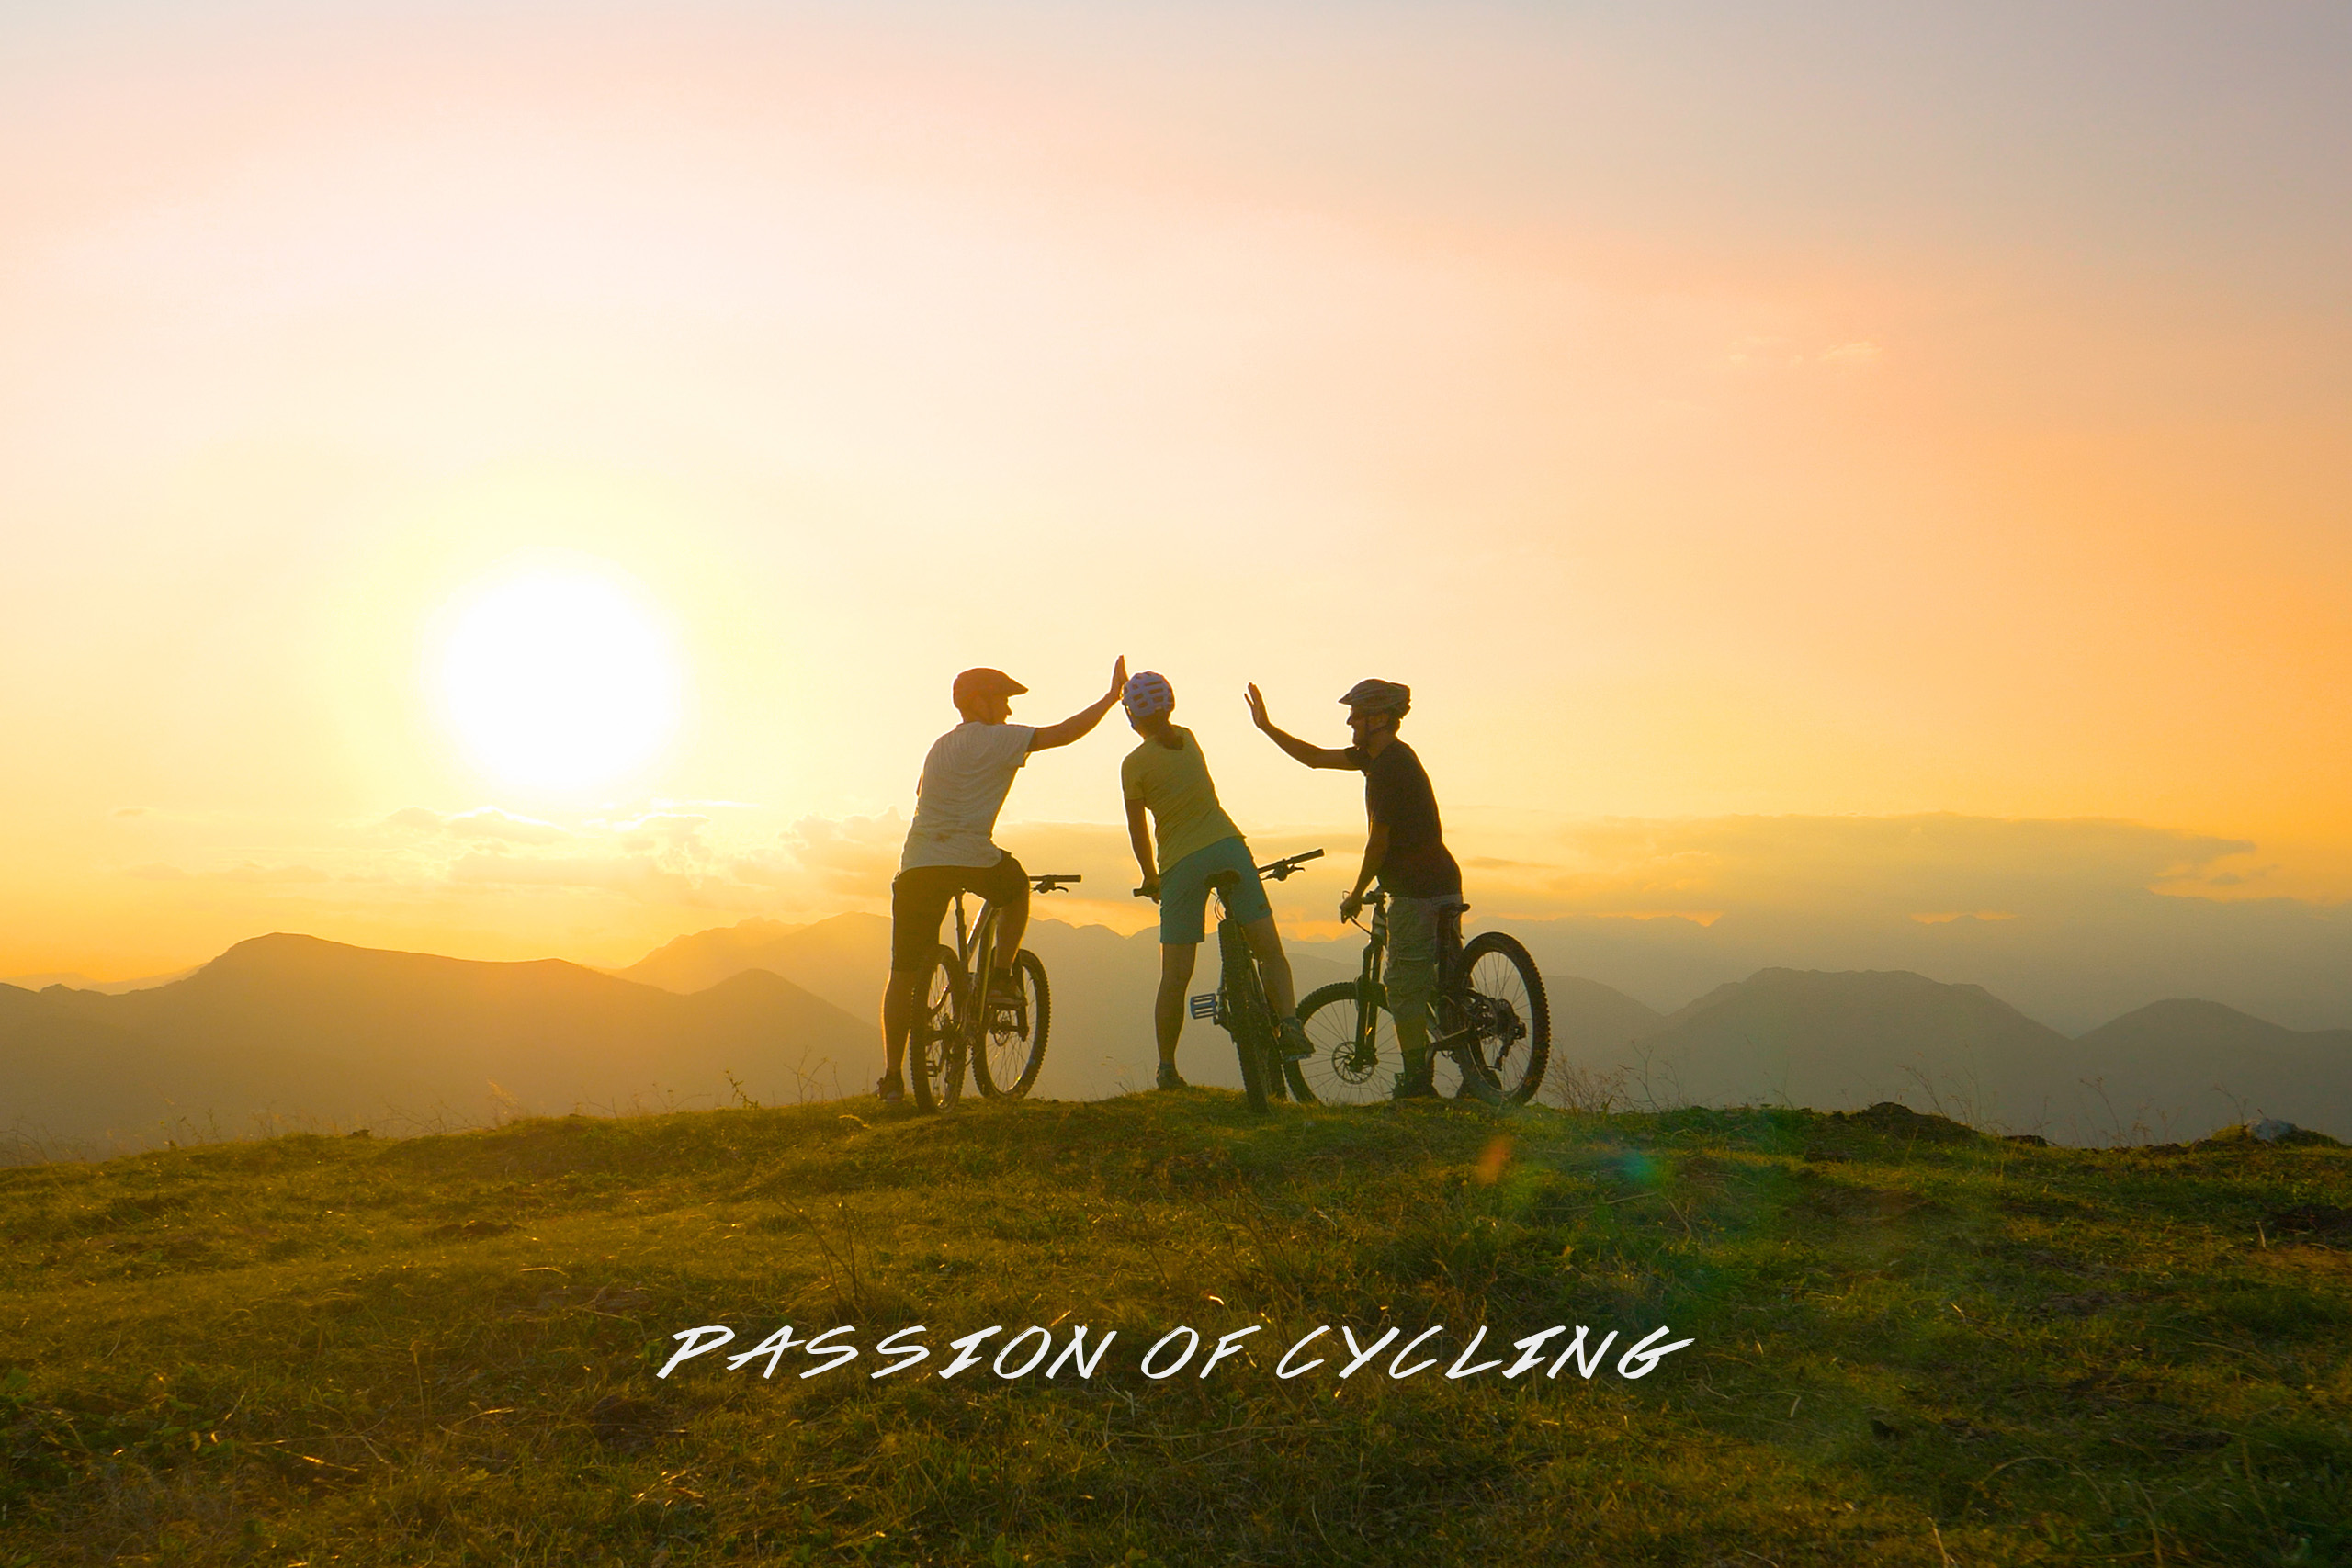 corratec - Passion of cycling